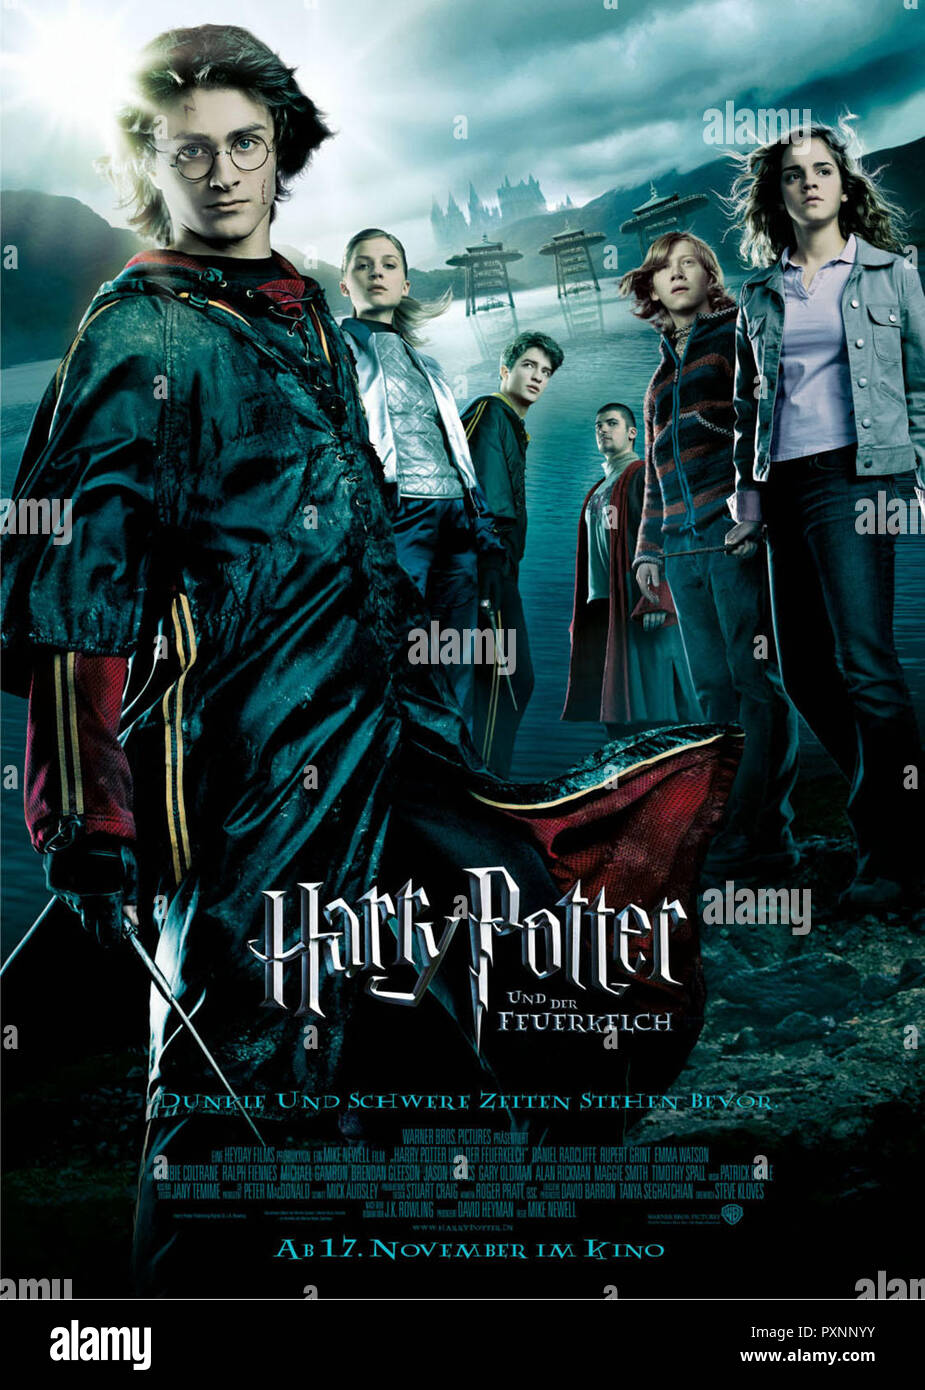 Page 2 Harry Potter Poster High Resolution Stock Photography And Images Alamy